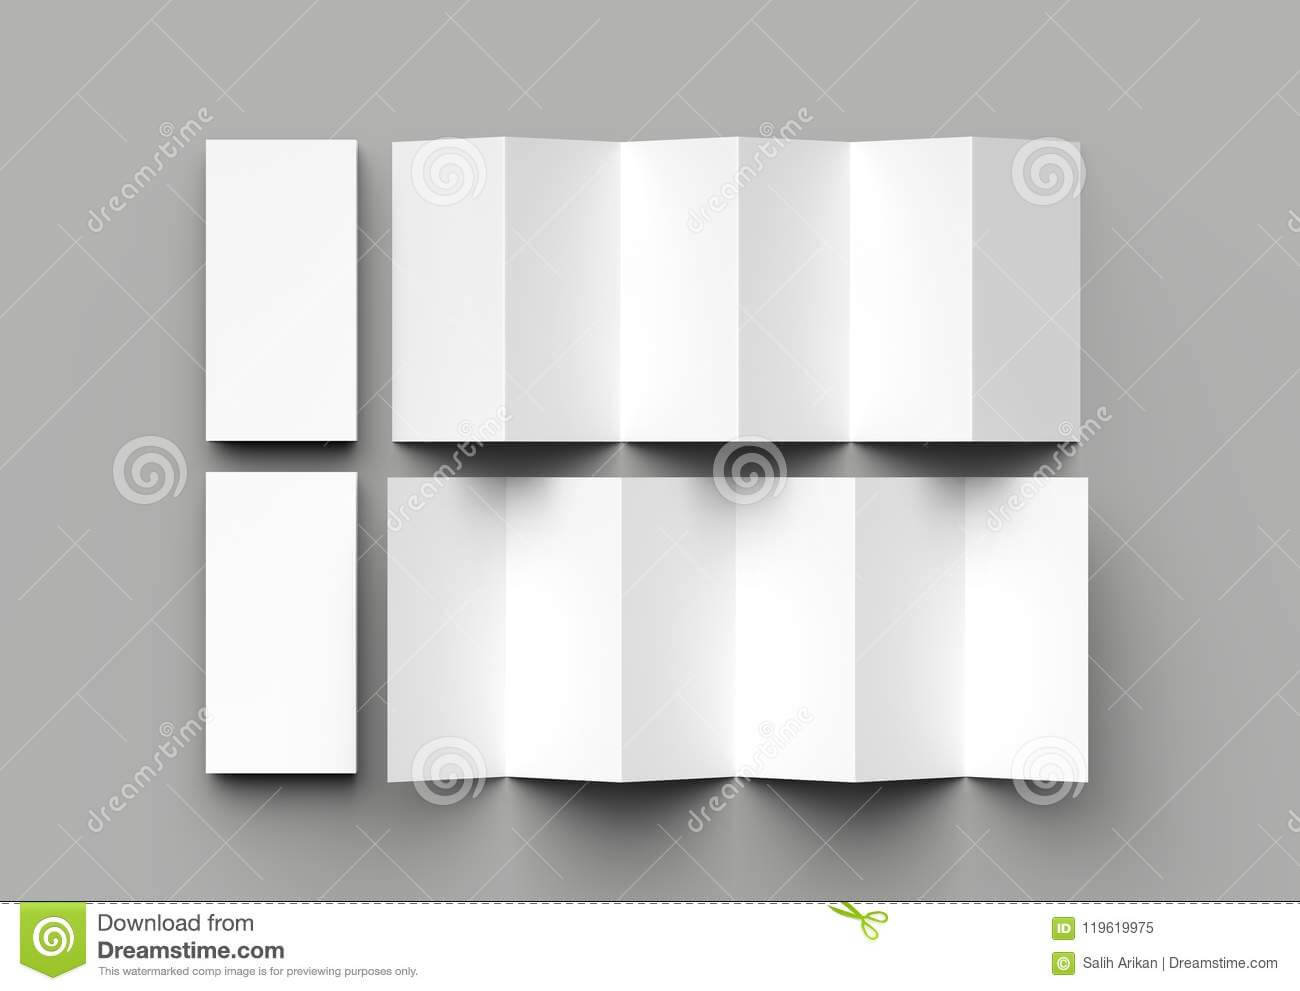 12 Page Leaflet, 6 Panel Accordion Fold - Z Fold Vertical throughout 6 Panel Brochure Template